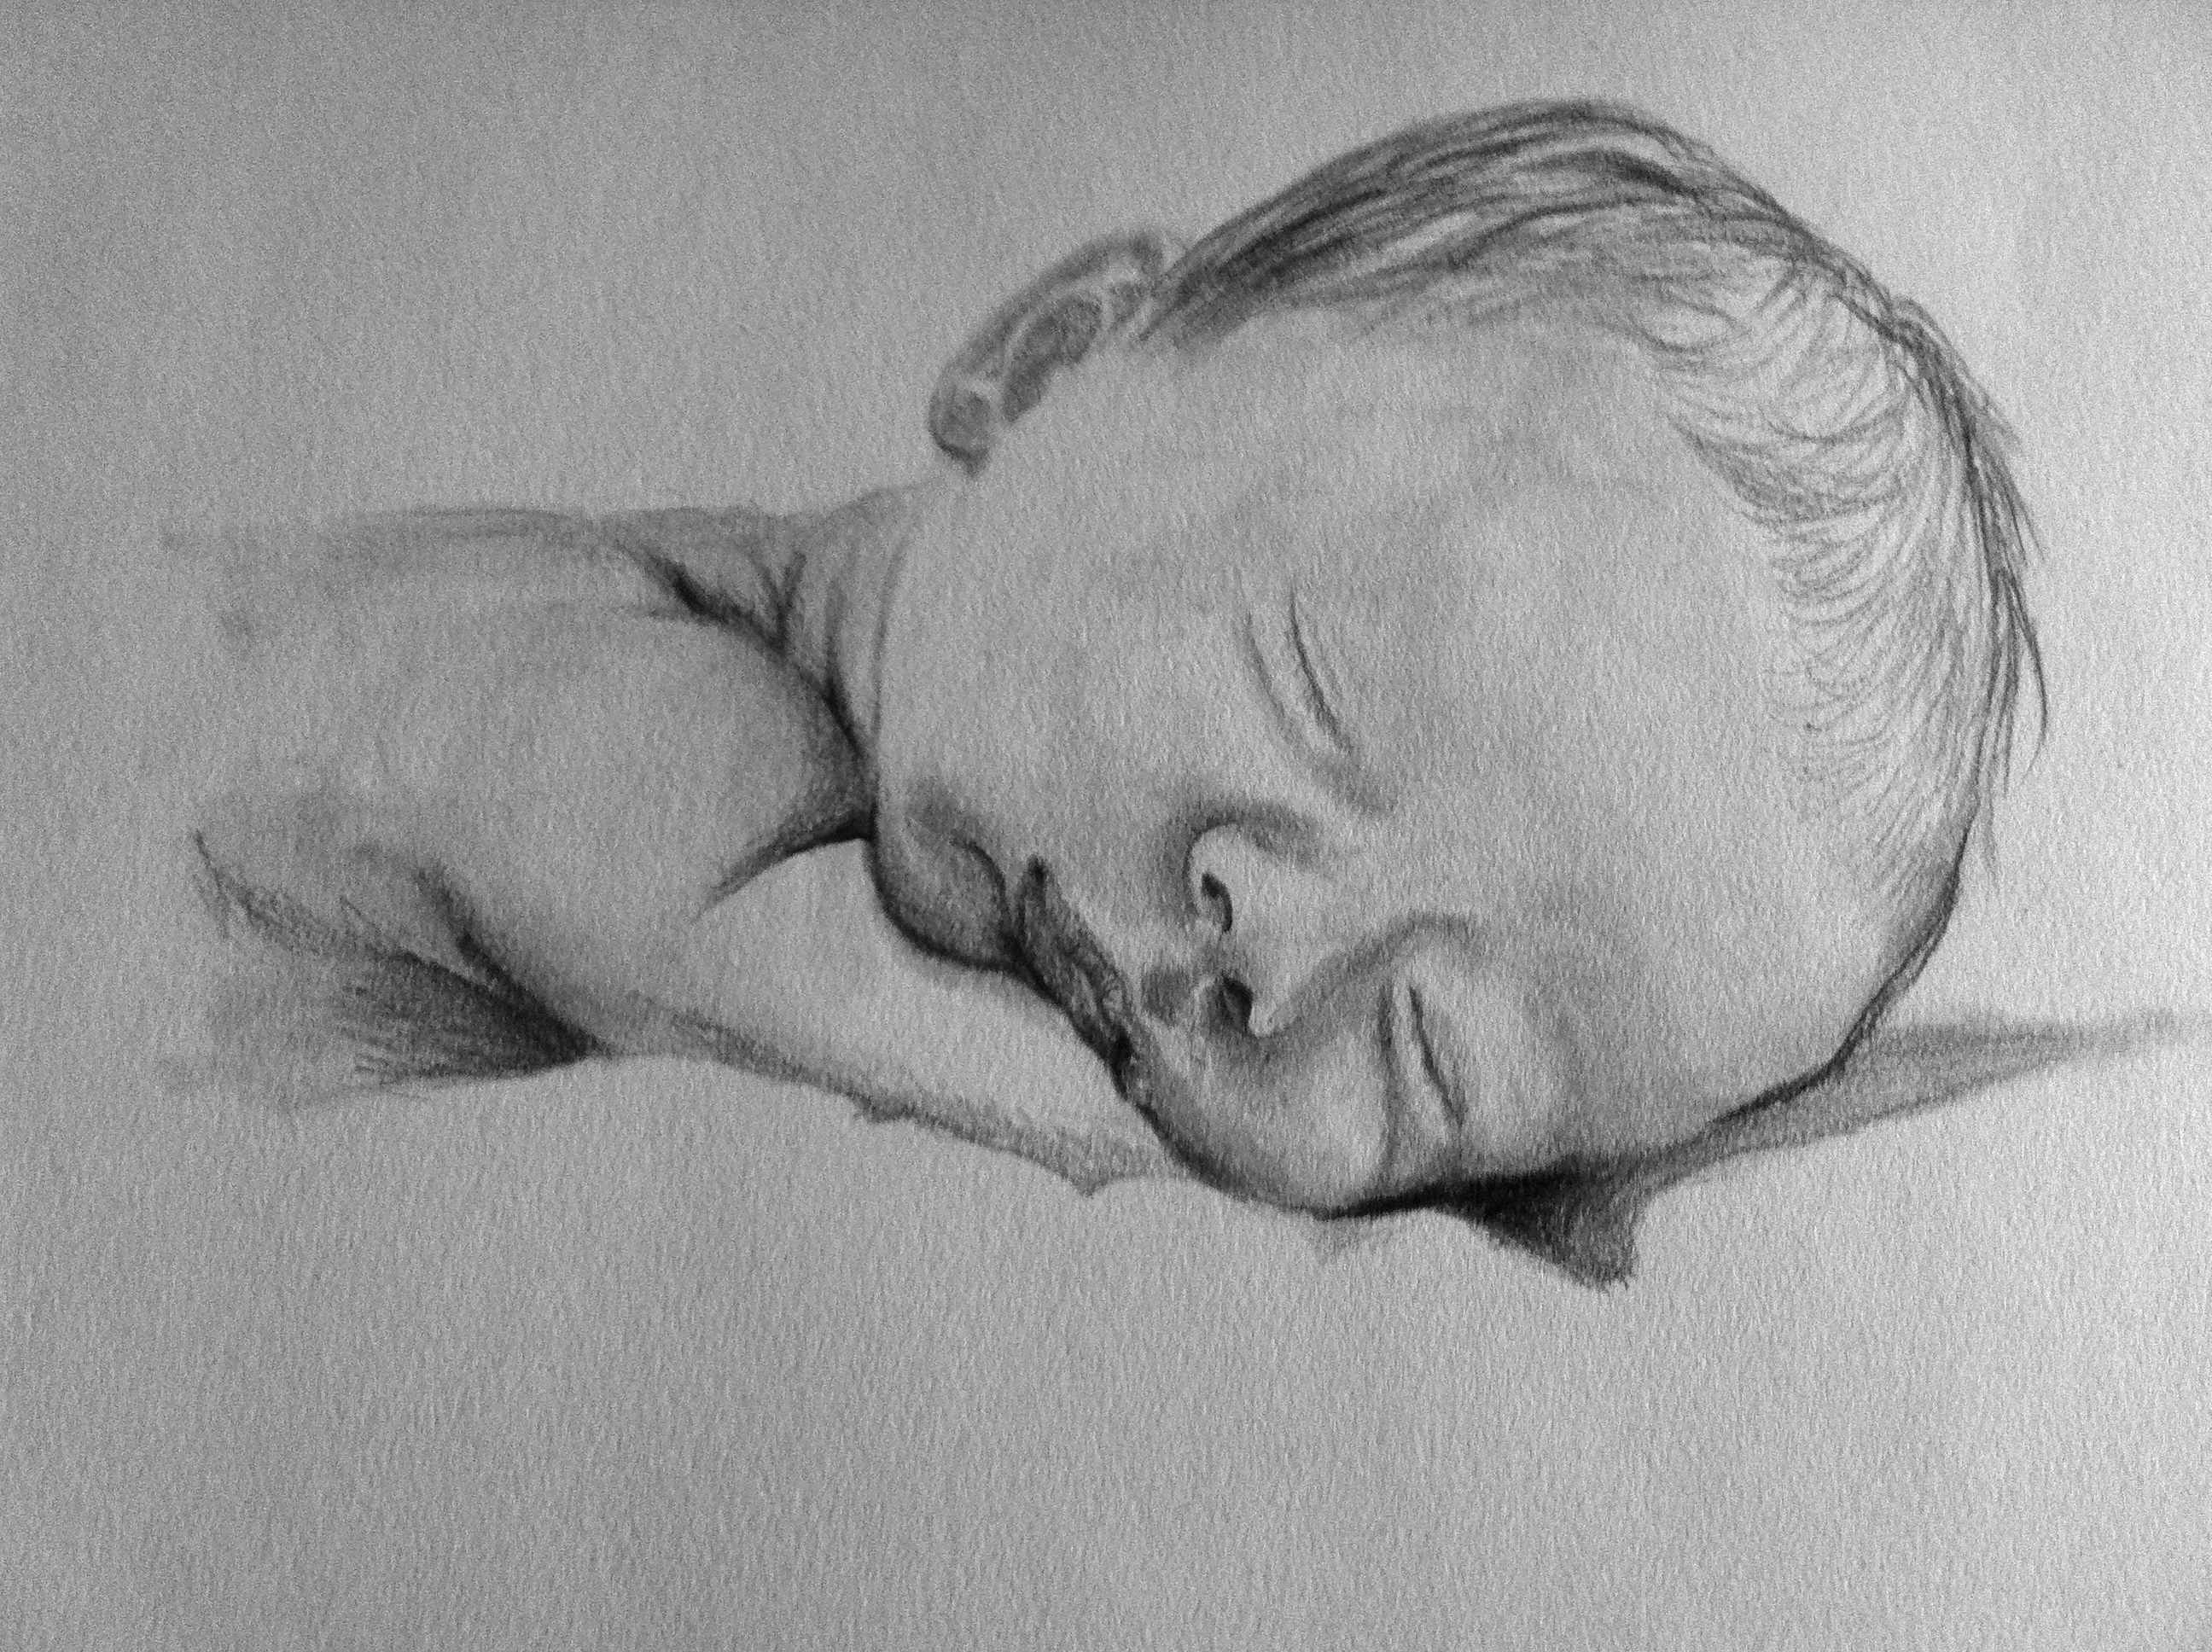 how to draw a real baby free baby drawings download free clip art free clip art real draw to how baby a